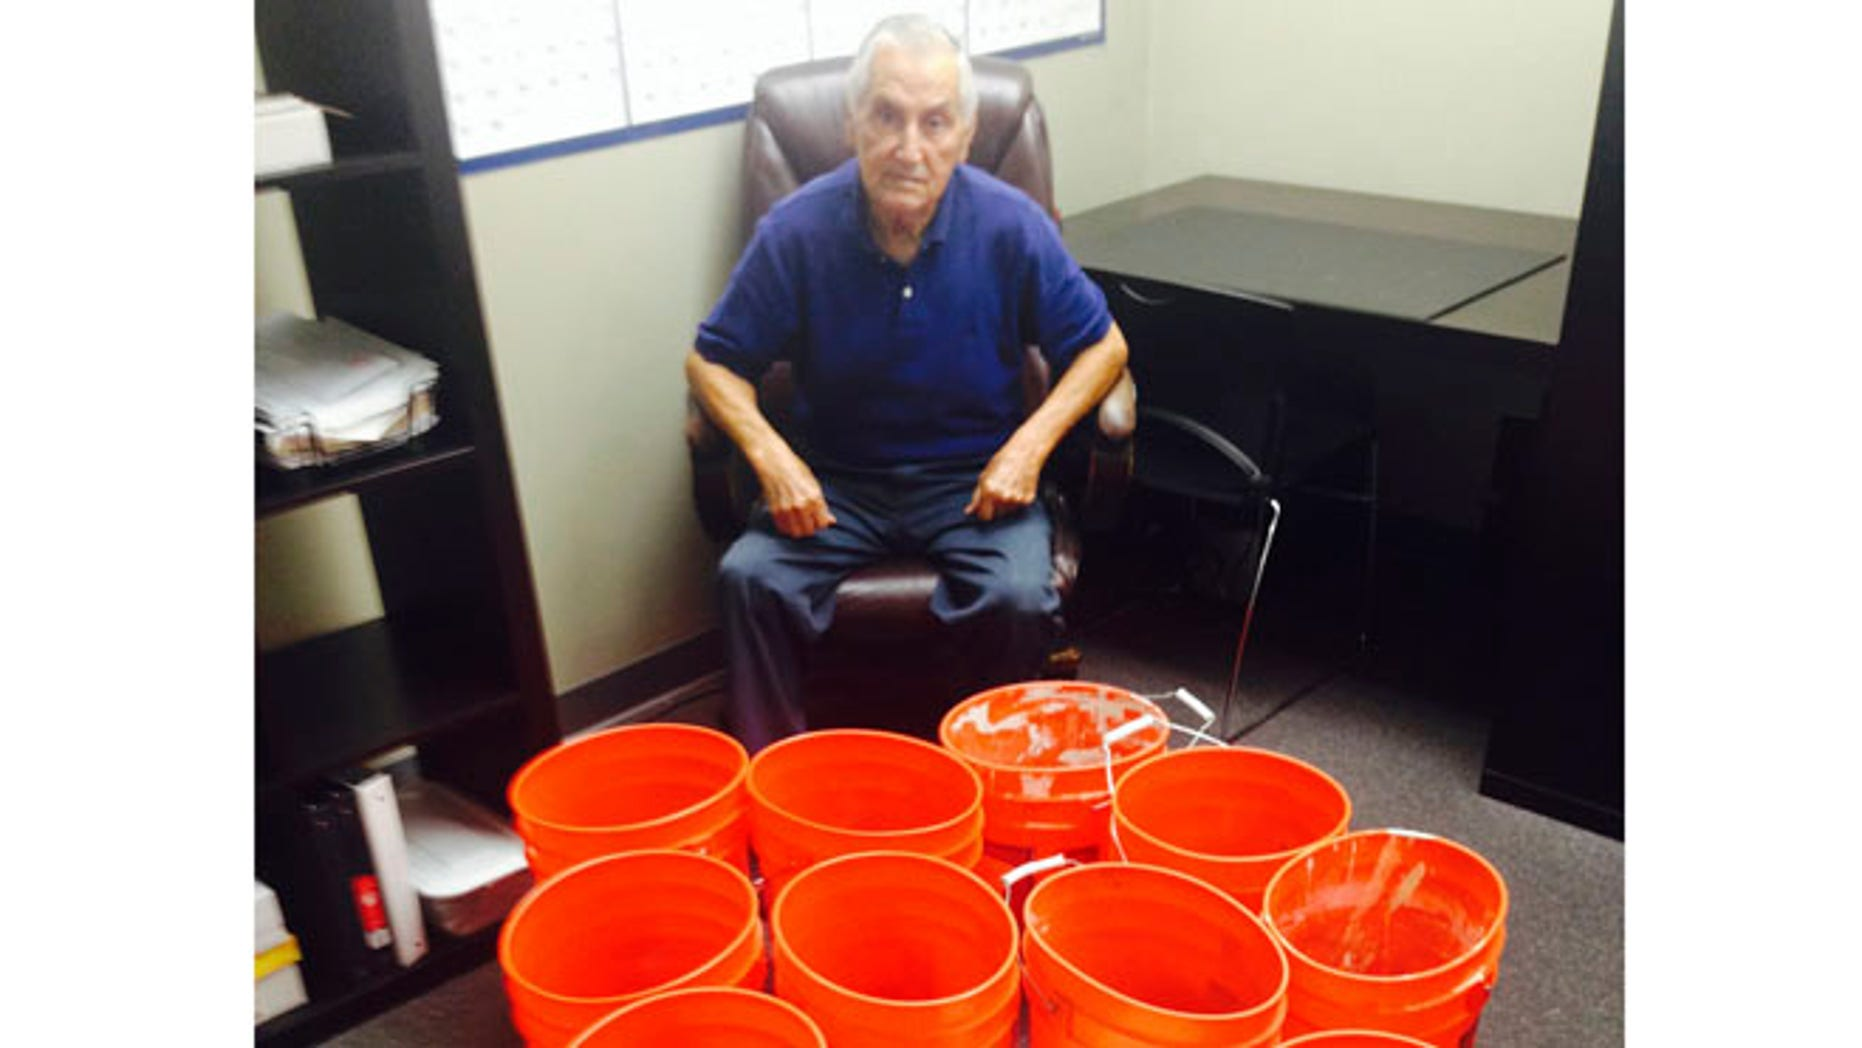 July 31, 2014: This image provided by Andres Carrasco shows him in his office in Los Angeles with buckets of change he won as a partial settlement in a 2012 lawsuit against Adrianas Insurance Services, a Rancho Cucamonga, Calif.-based company.